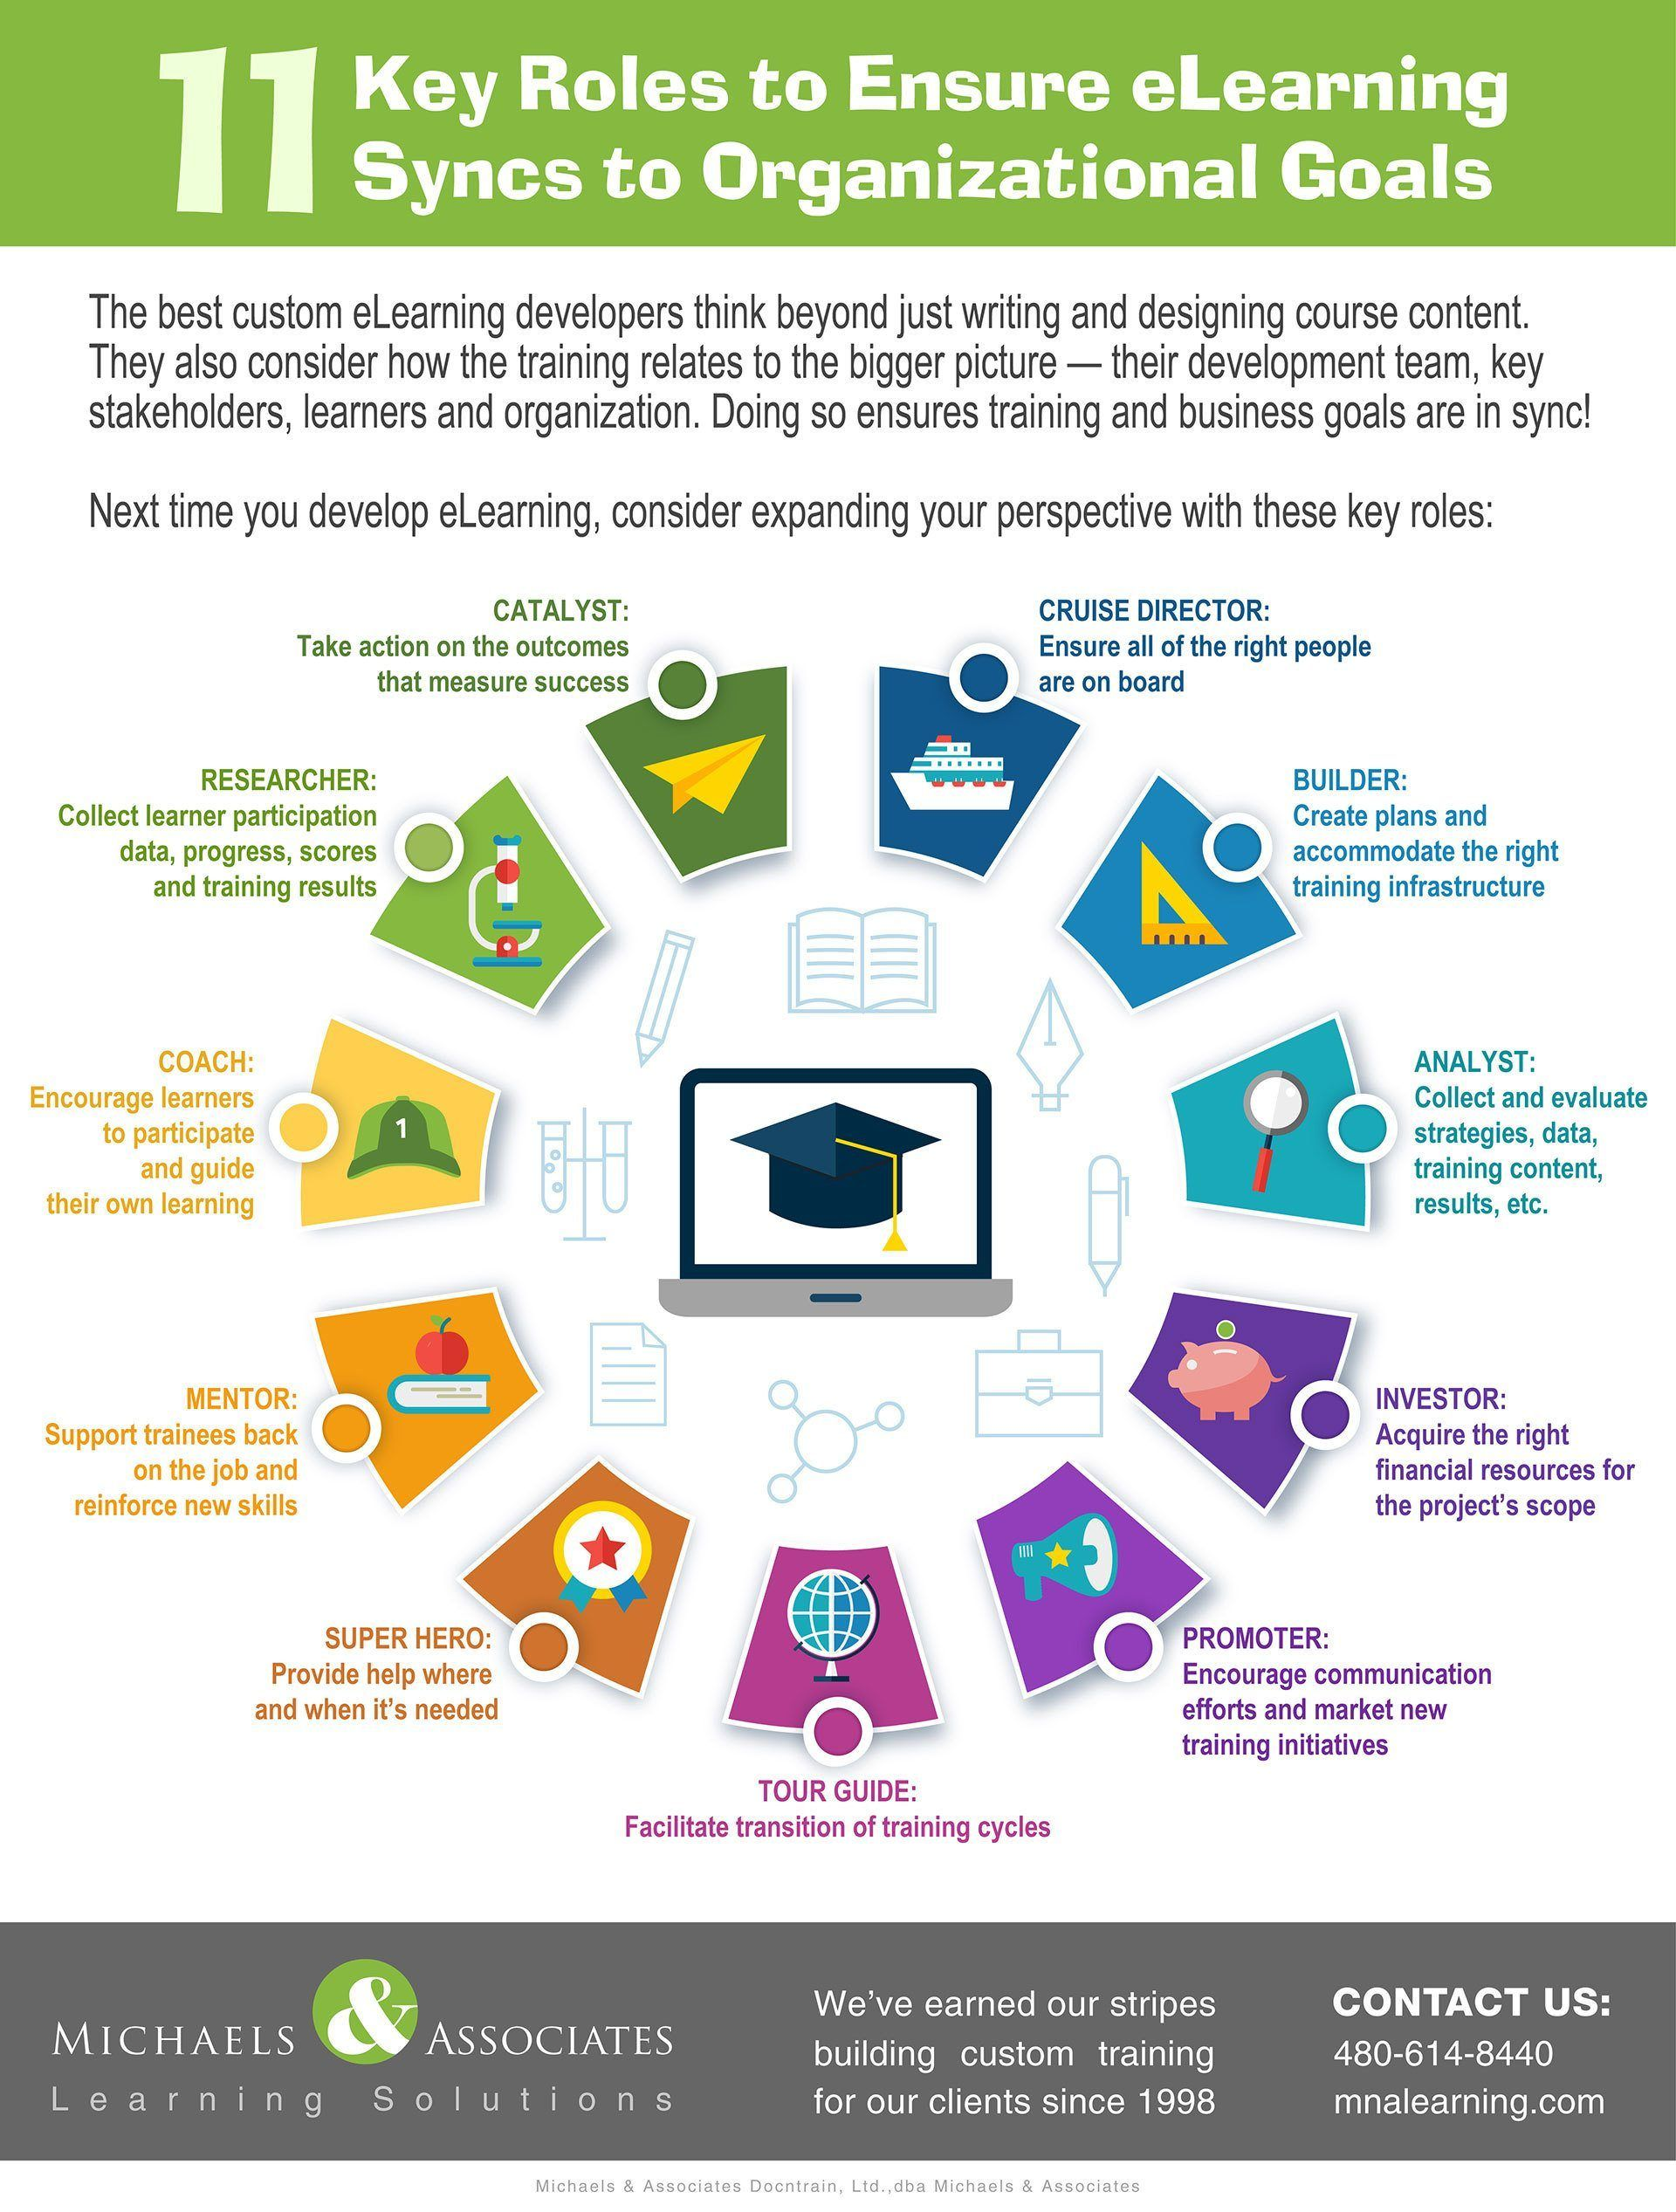 11 Quick Tips to Sync eLearning to Organizational Goals Infographic